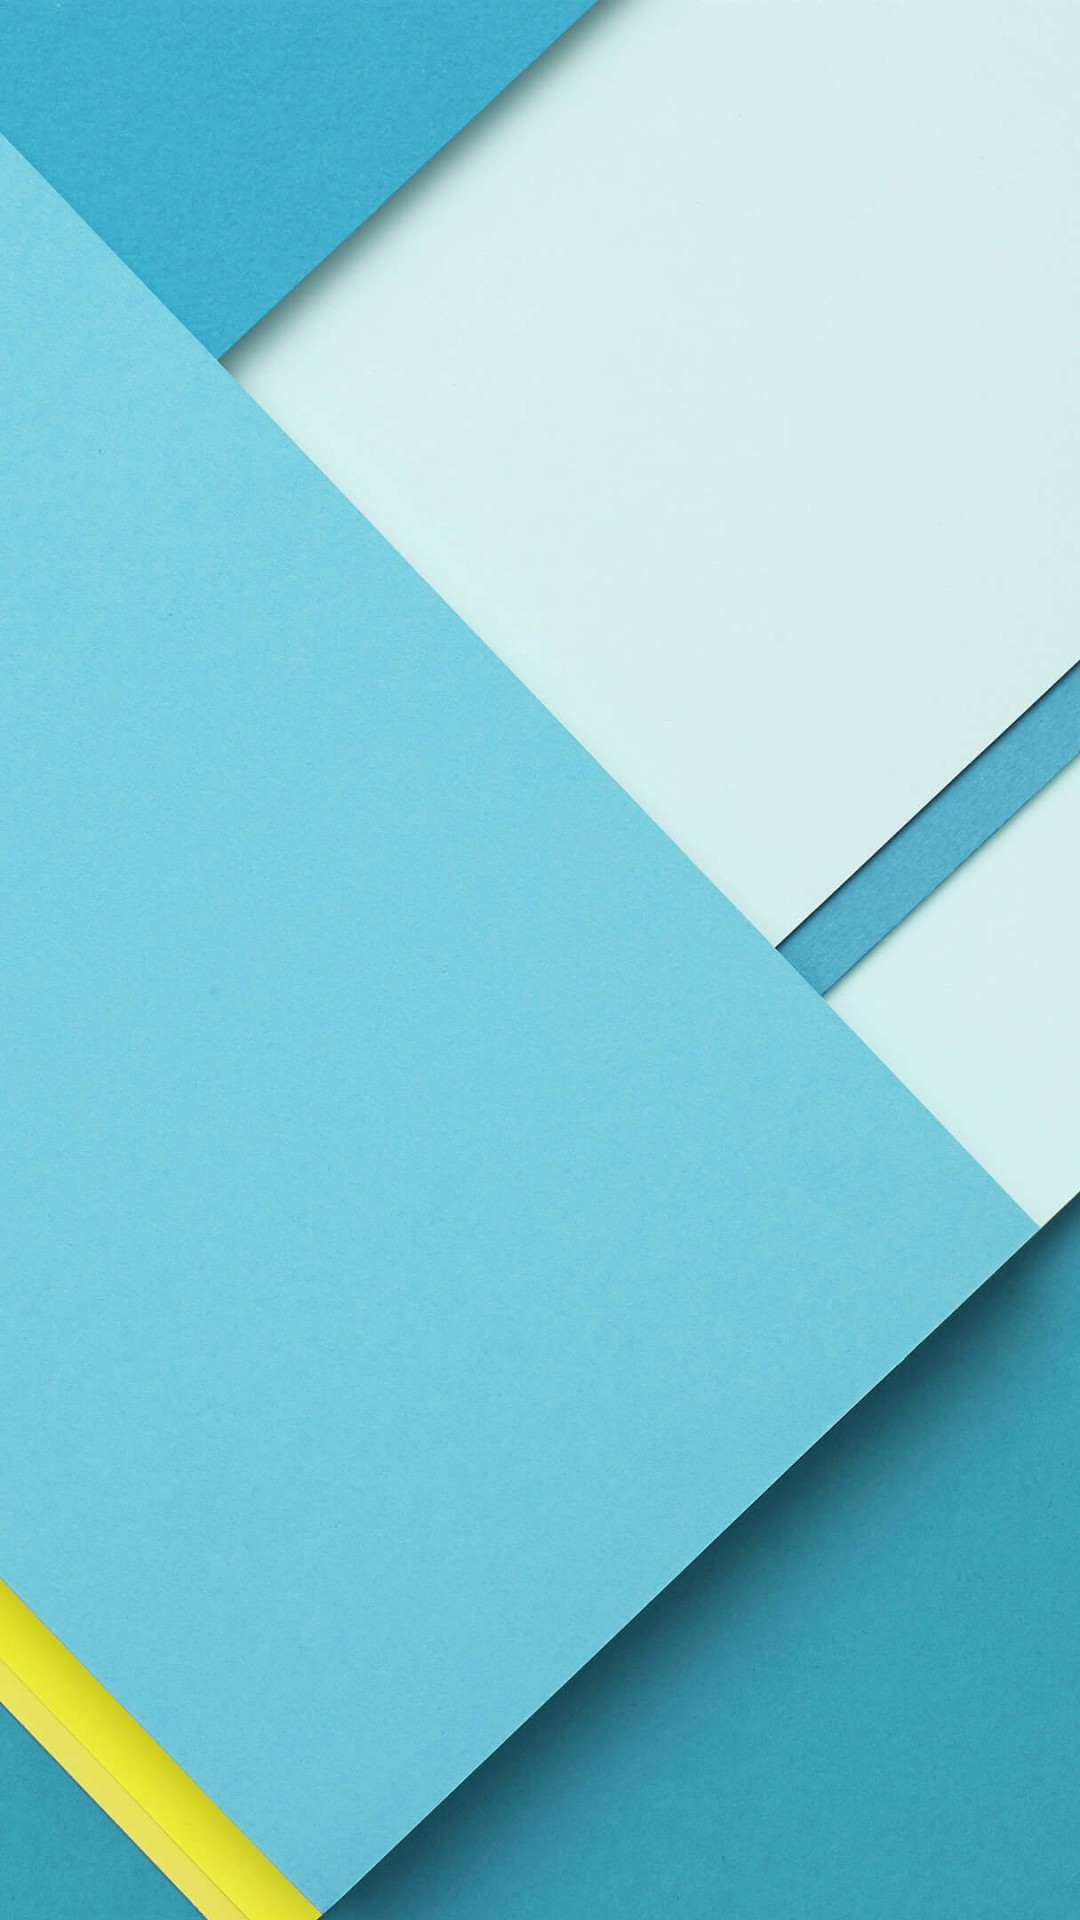 Google Material Design Wallpaper for HTC One